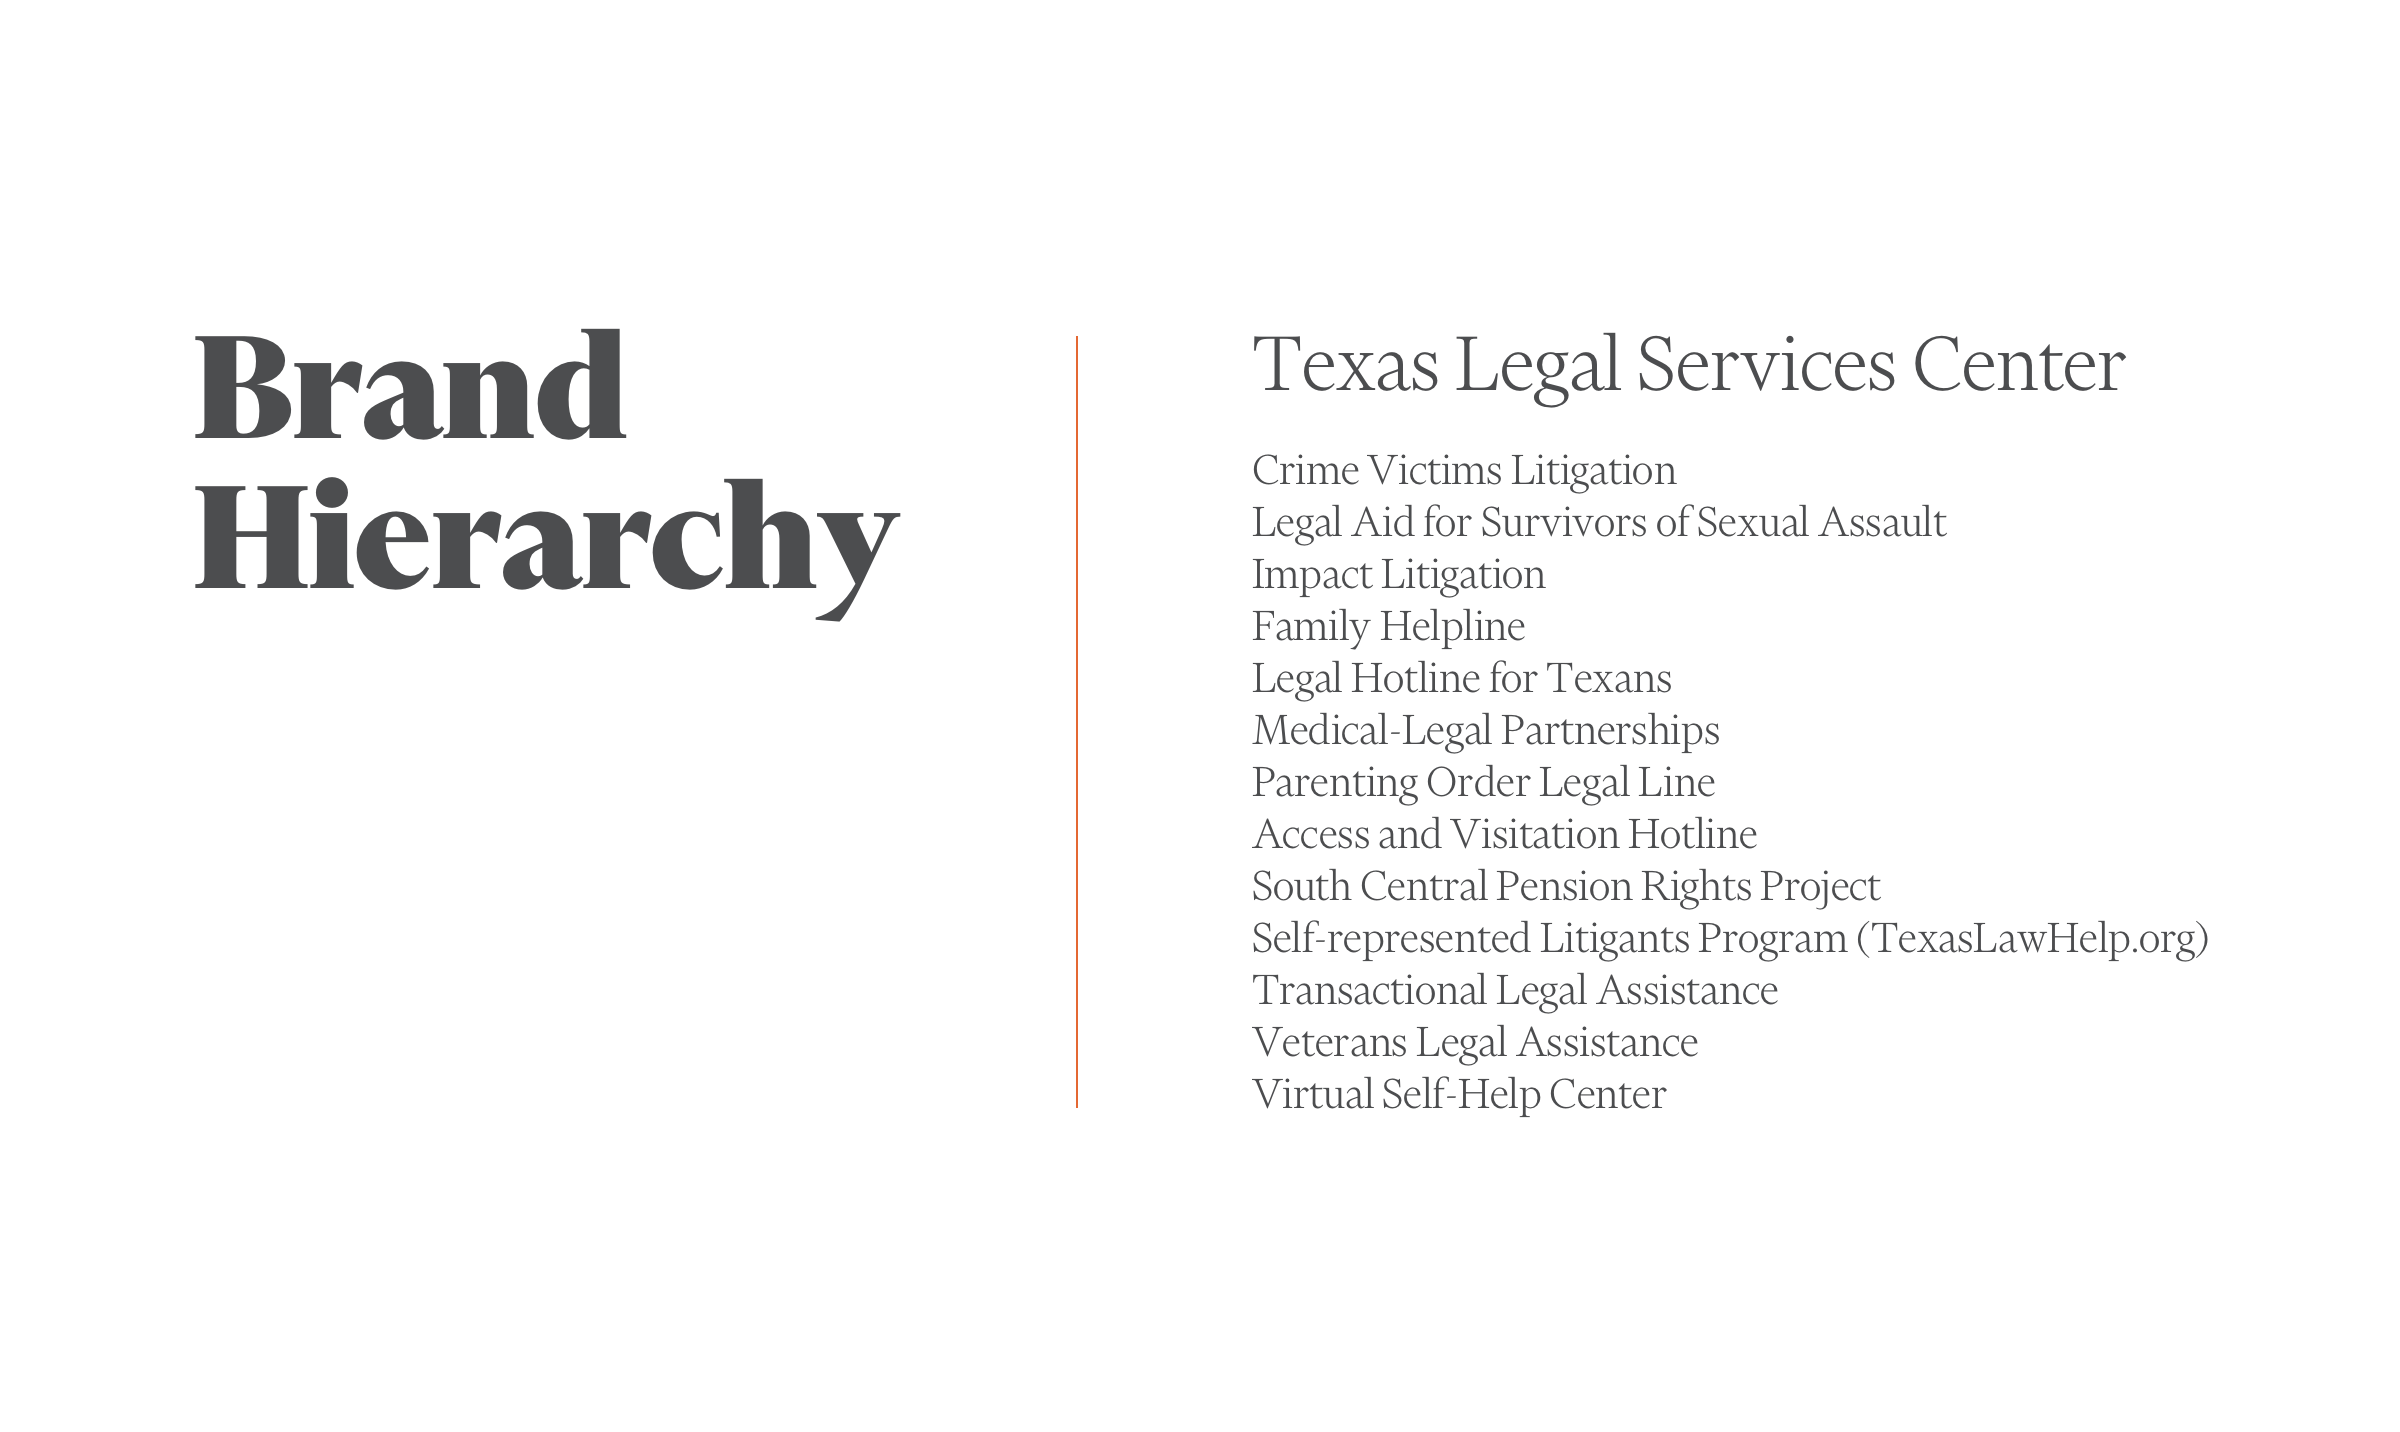 What is brand hierarchy? TLSC's former organization